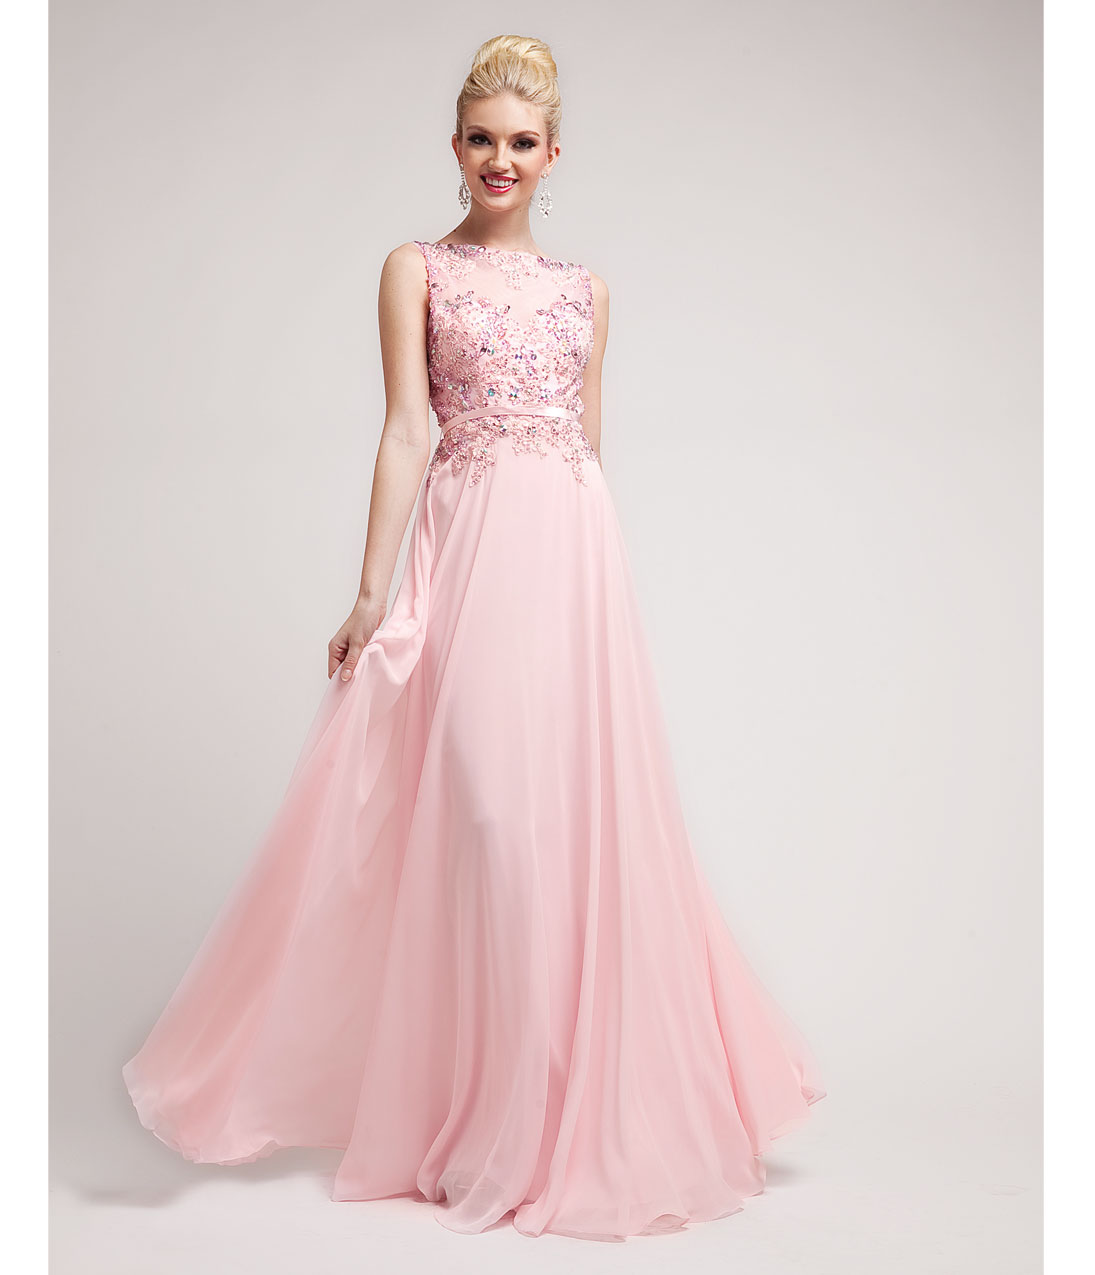 2014 prom dresses baby pink beaded lace chiffon gown for Pink homecoming dresses